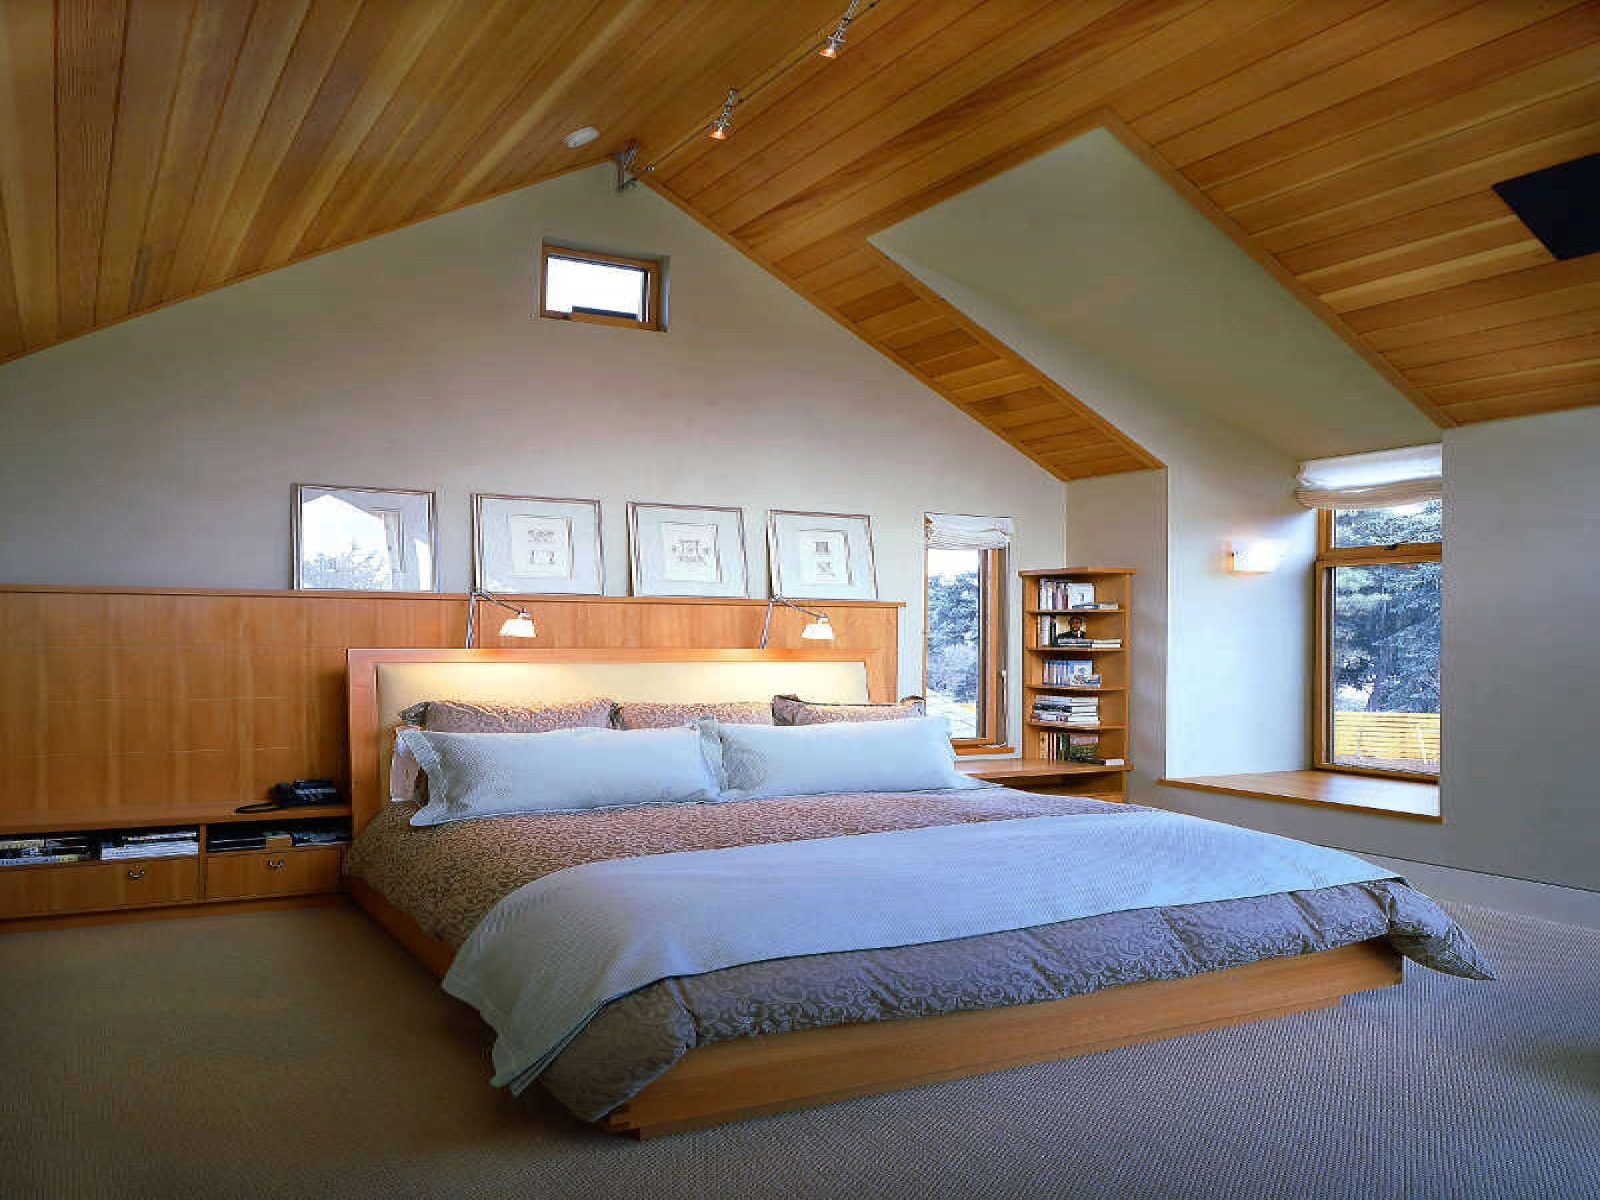 Tips for Converting Your Attic into an Additional Bedroom